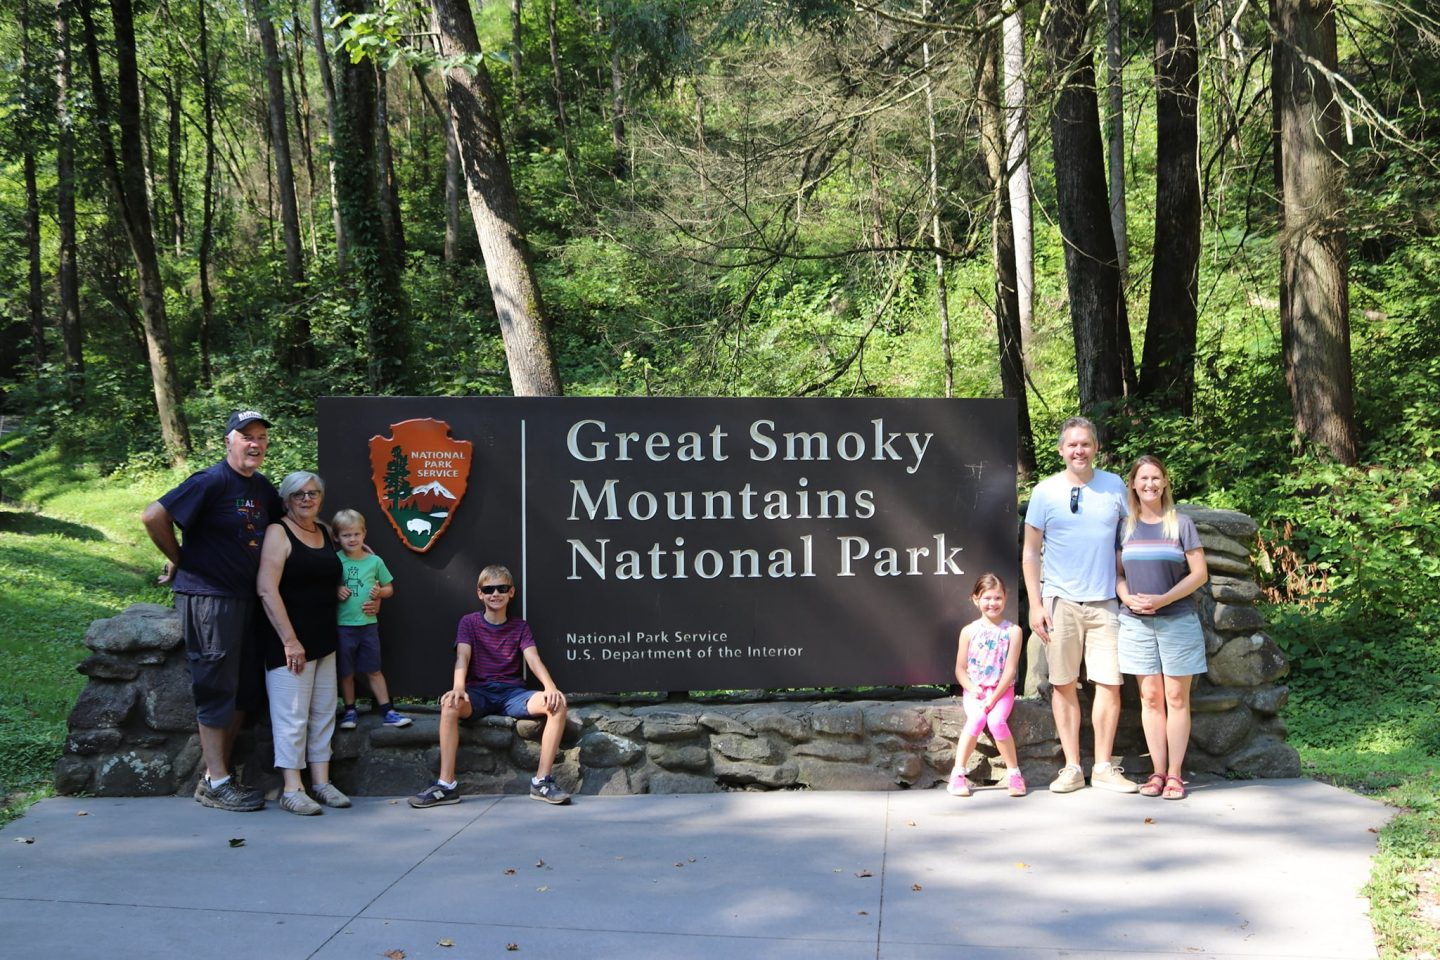 The Ultimate American Outdoor Family Adventure, The Great Smoky Mountains in Tennessee